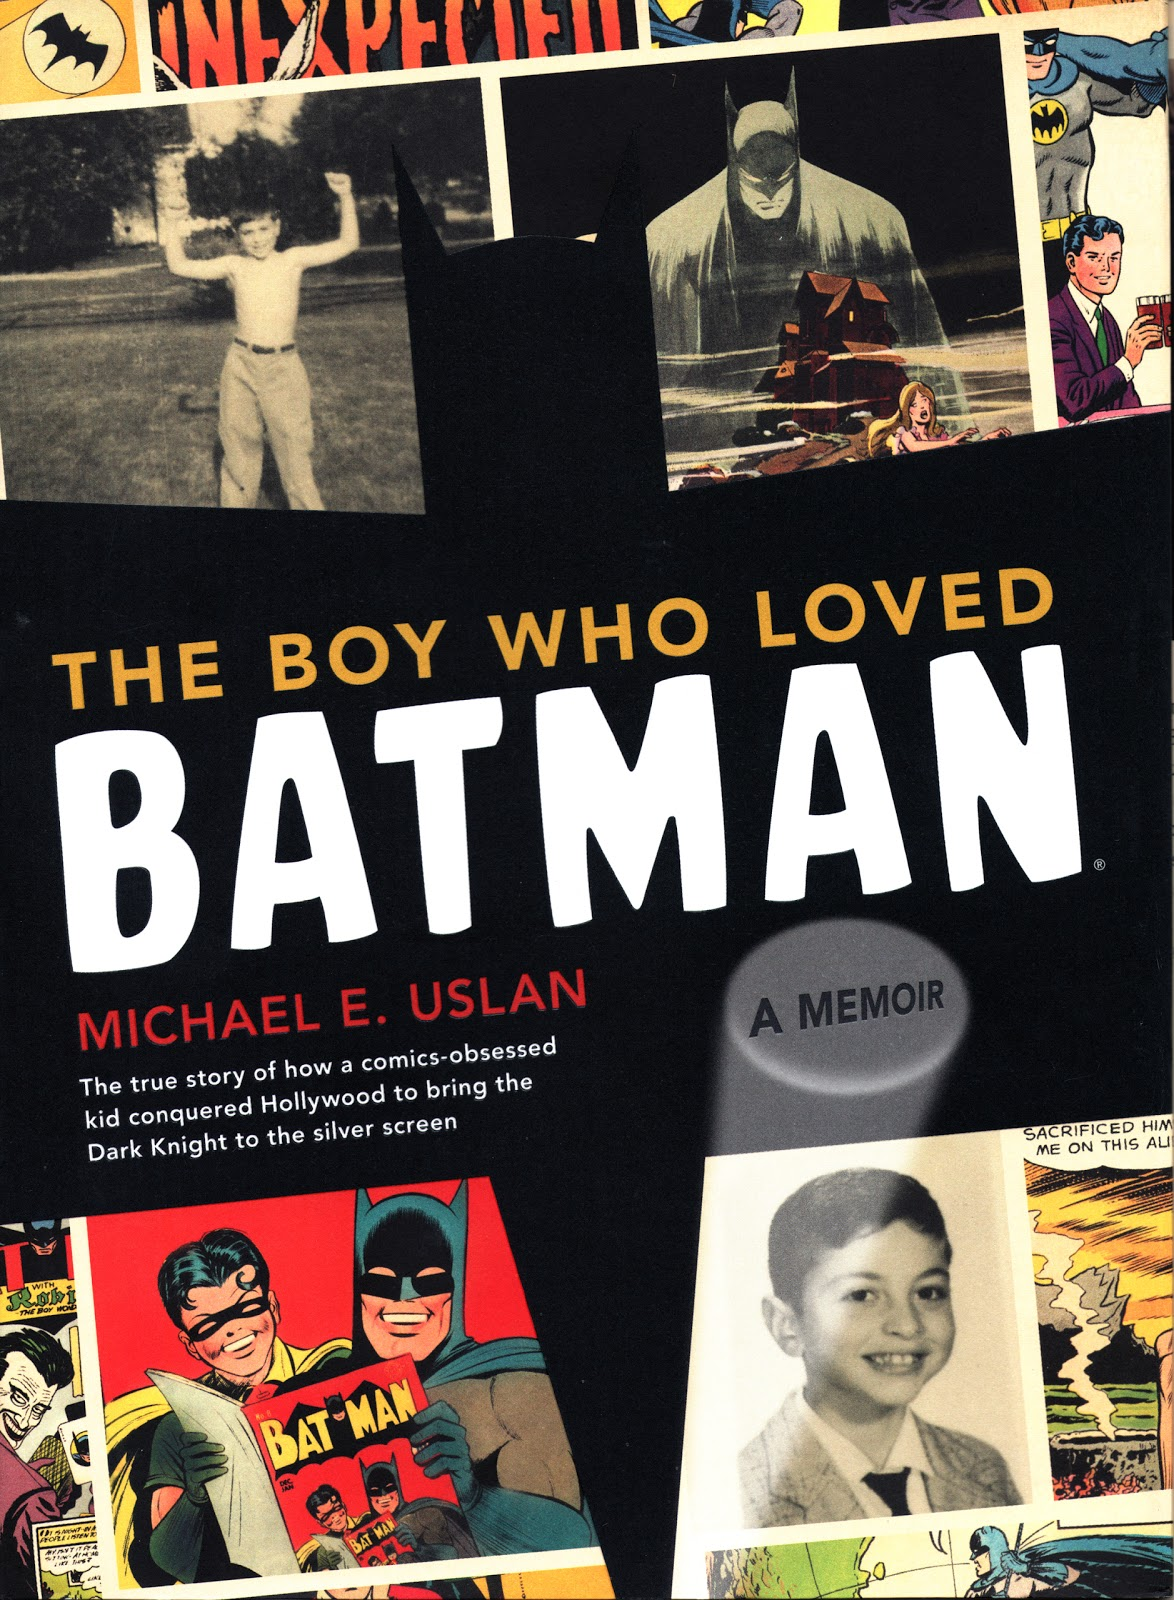 http://1.bp.blogspot.com/-Bosr4A2Uwcs/T14GekNpWiI/AAAAAAAAJNY/p3qVQ1IWay0/s1600/The+Boy+Who+Loved+Batman.jpg